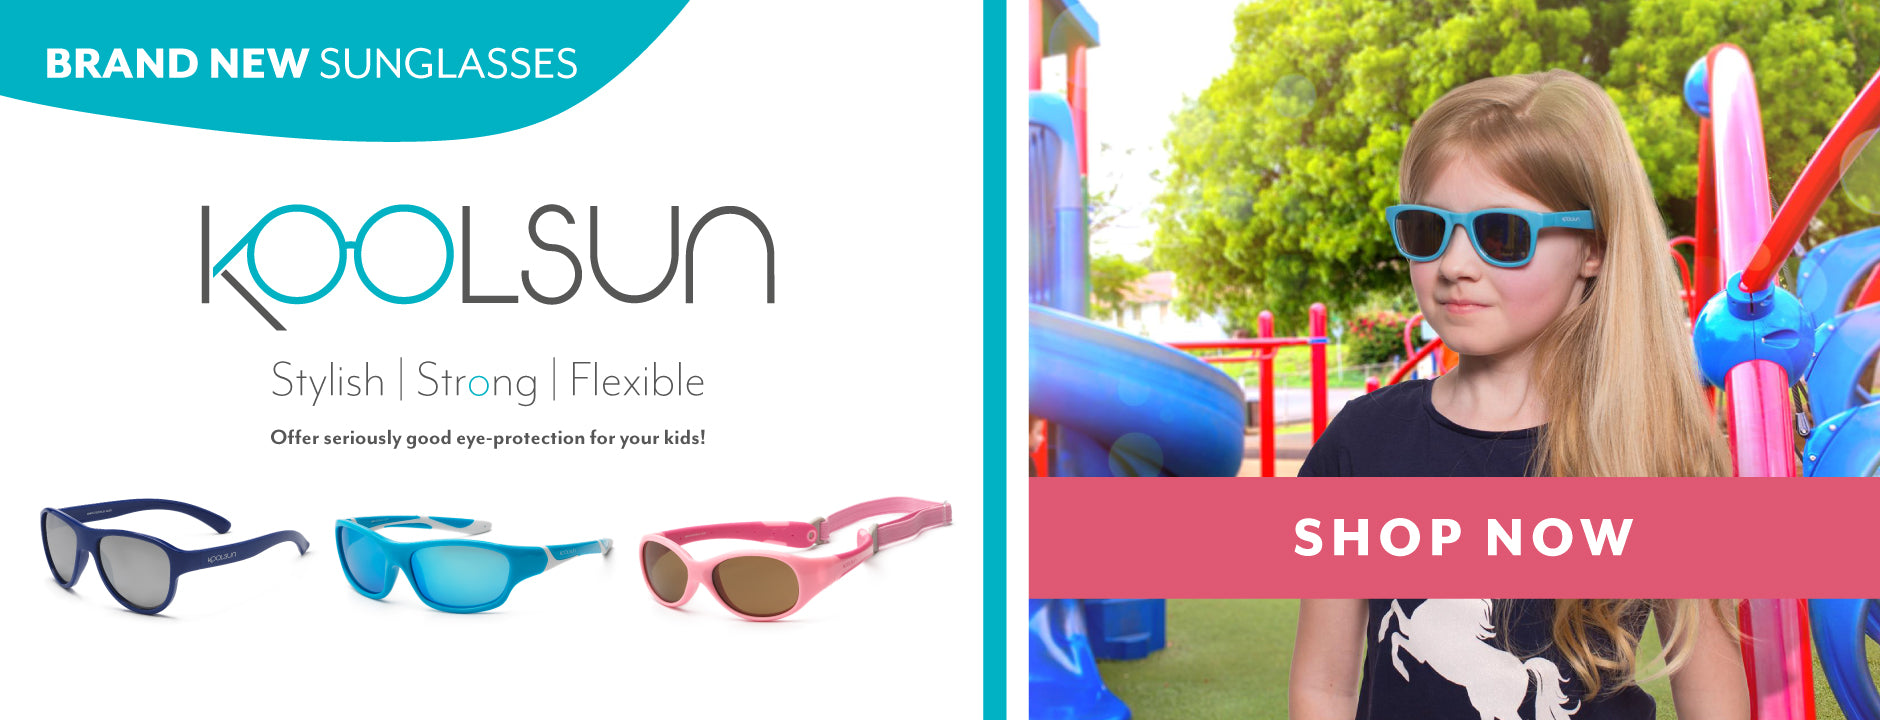 Koolsun Kids Sunglasses